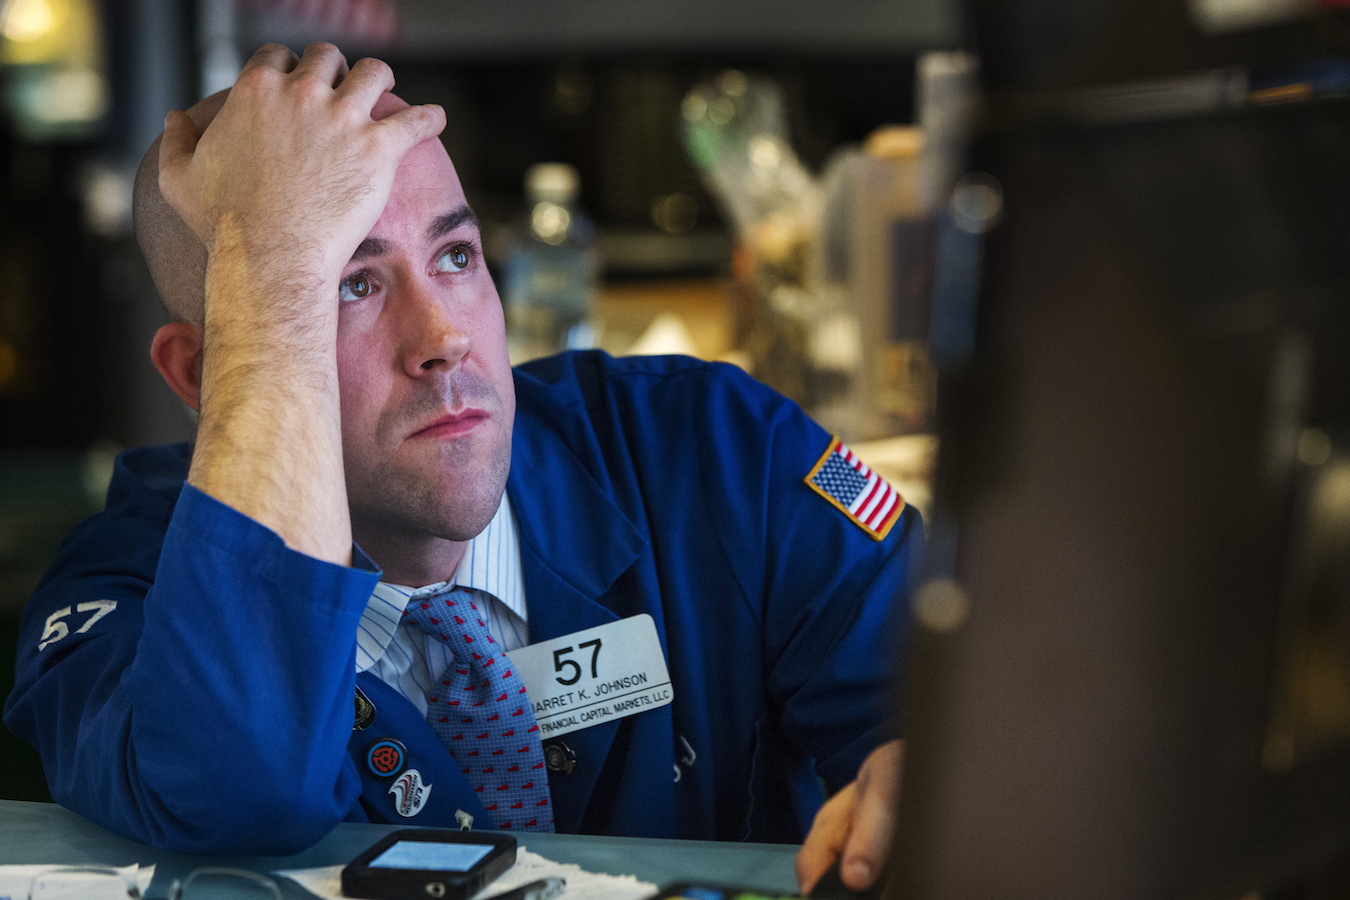 A trader watches the screen at his terminal on the floor of the New York Stock Exchange in New York October 15, 2014. Stocks suffered their biggest losses in years and the dollar slumped on Wednesday after the latest inflation data from the United States and China fanned worries about a global slowdown, driving investors into safe-haven government debt.